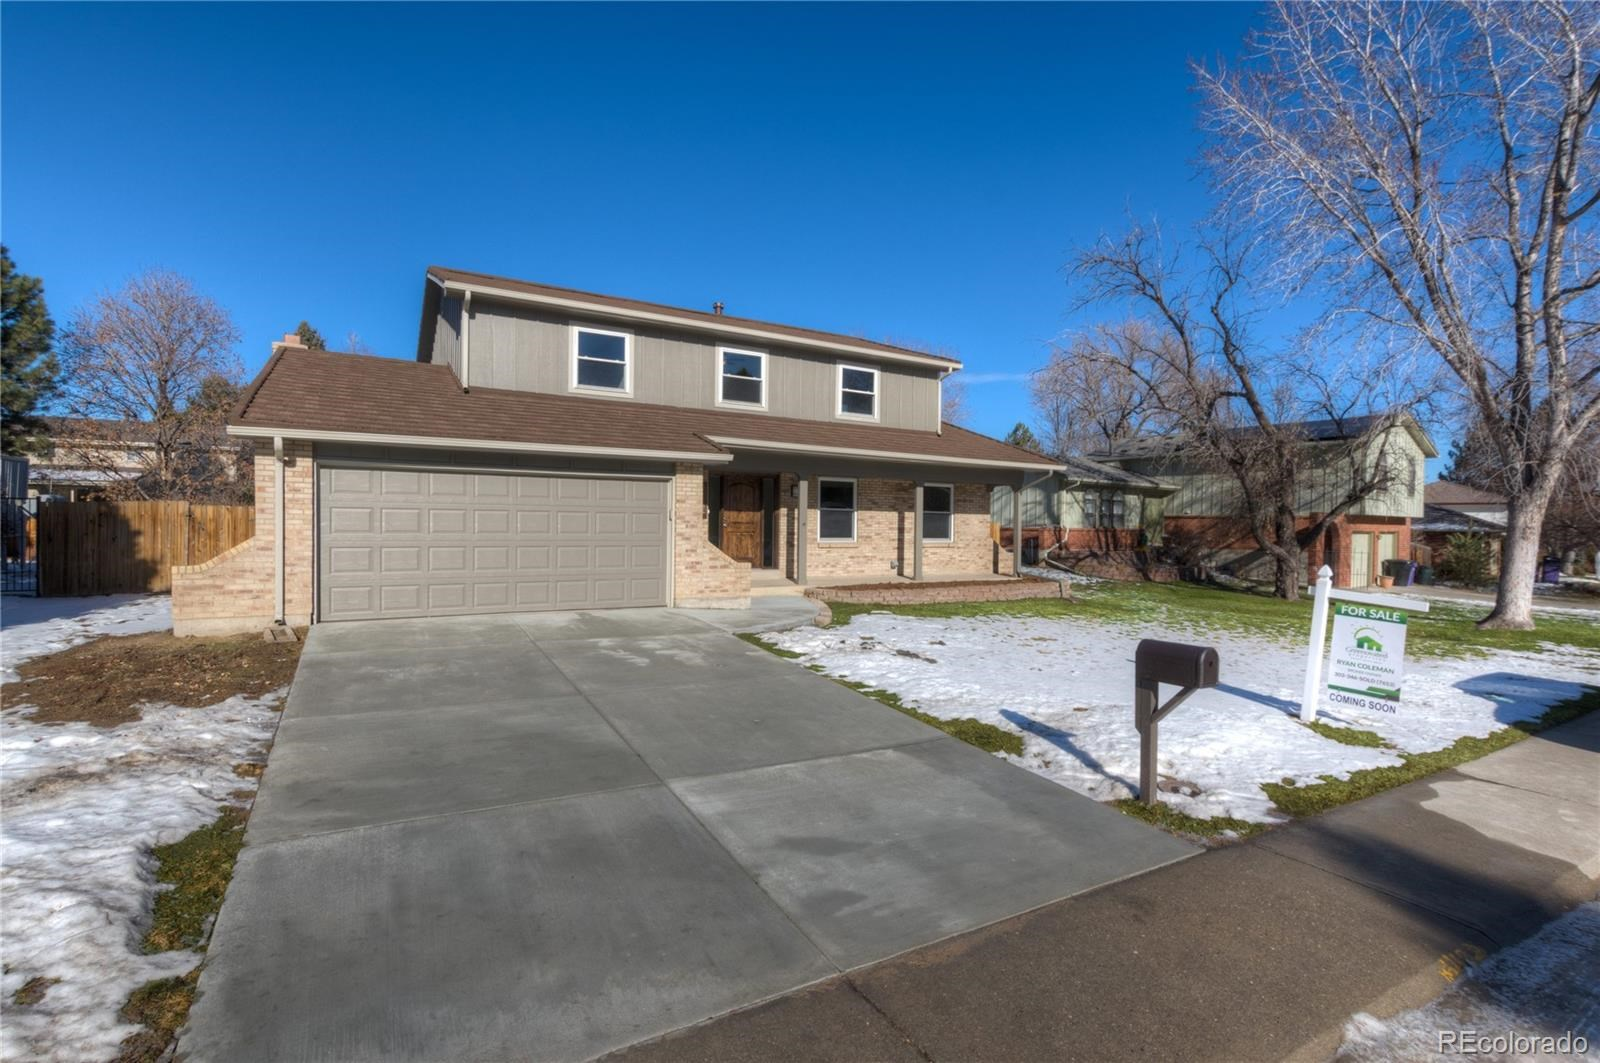 MLS# 4870124 - 40 - 4075 S Niagara Way, Denver, CO 80237